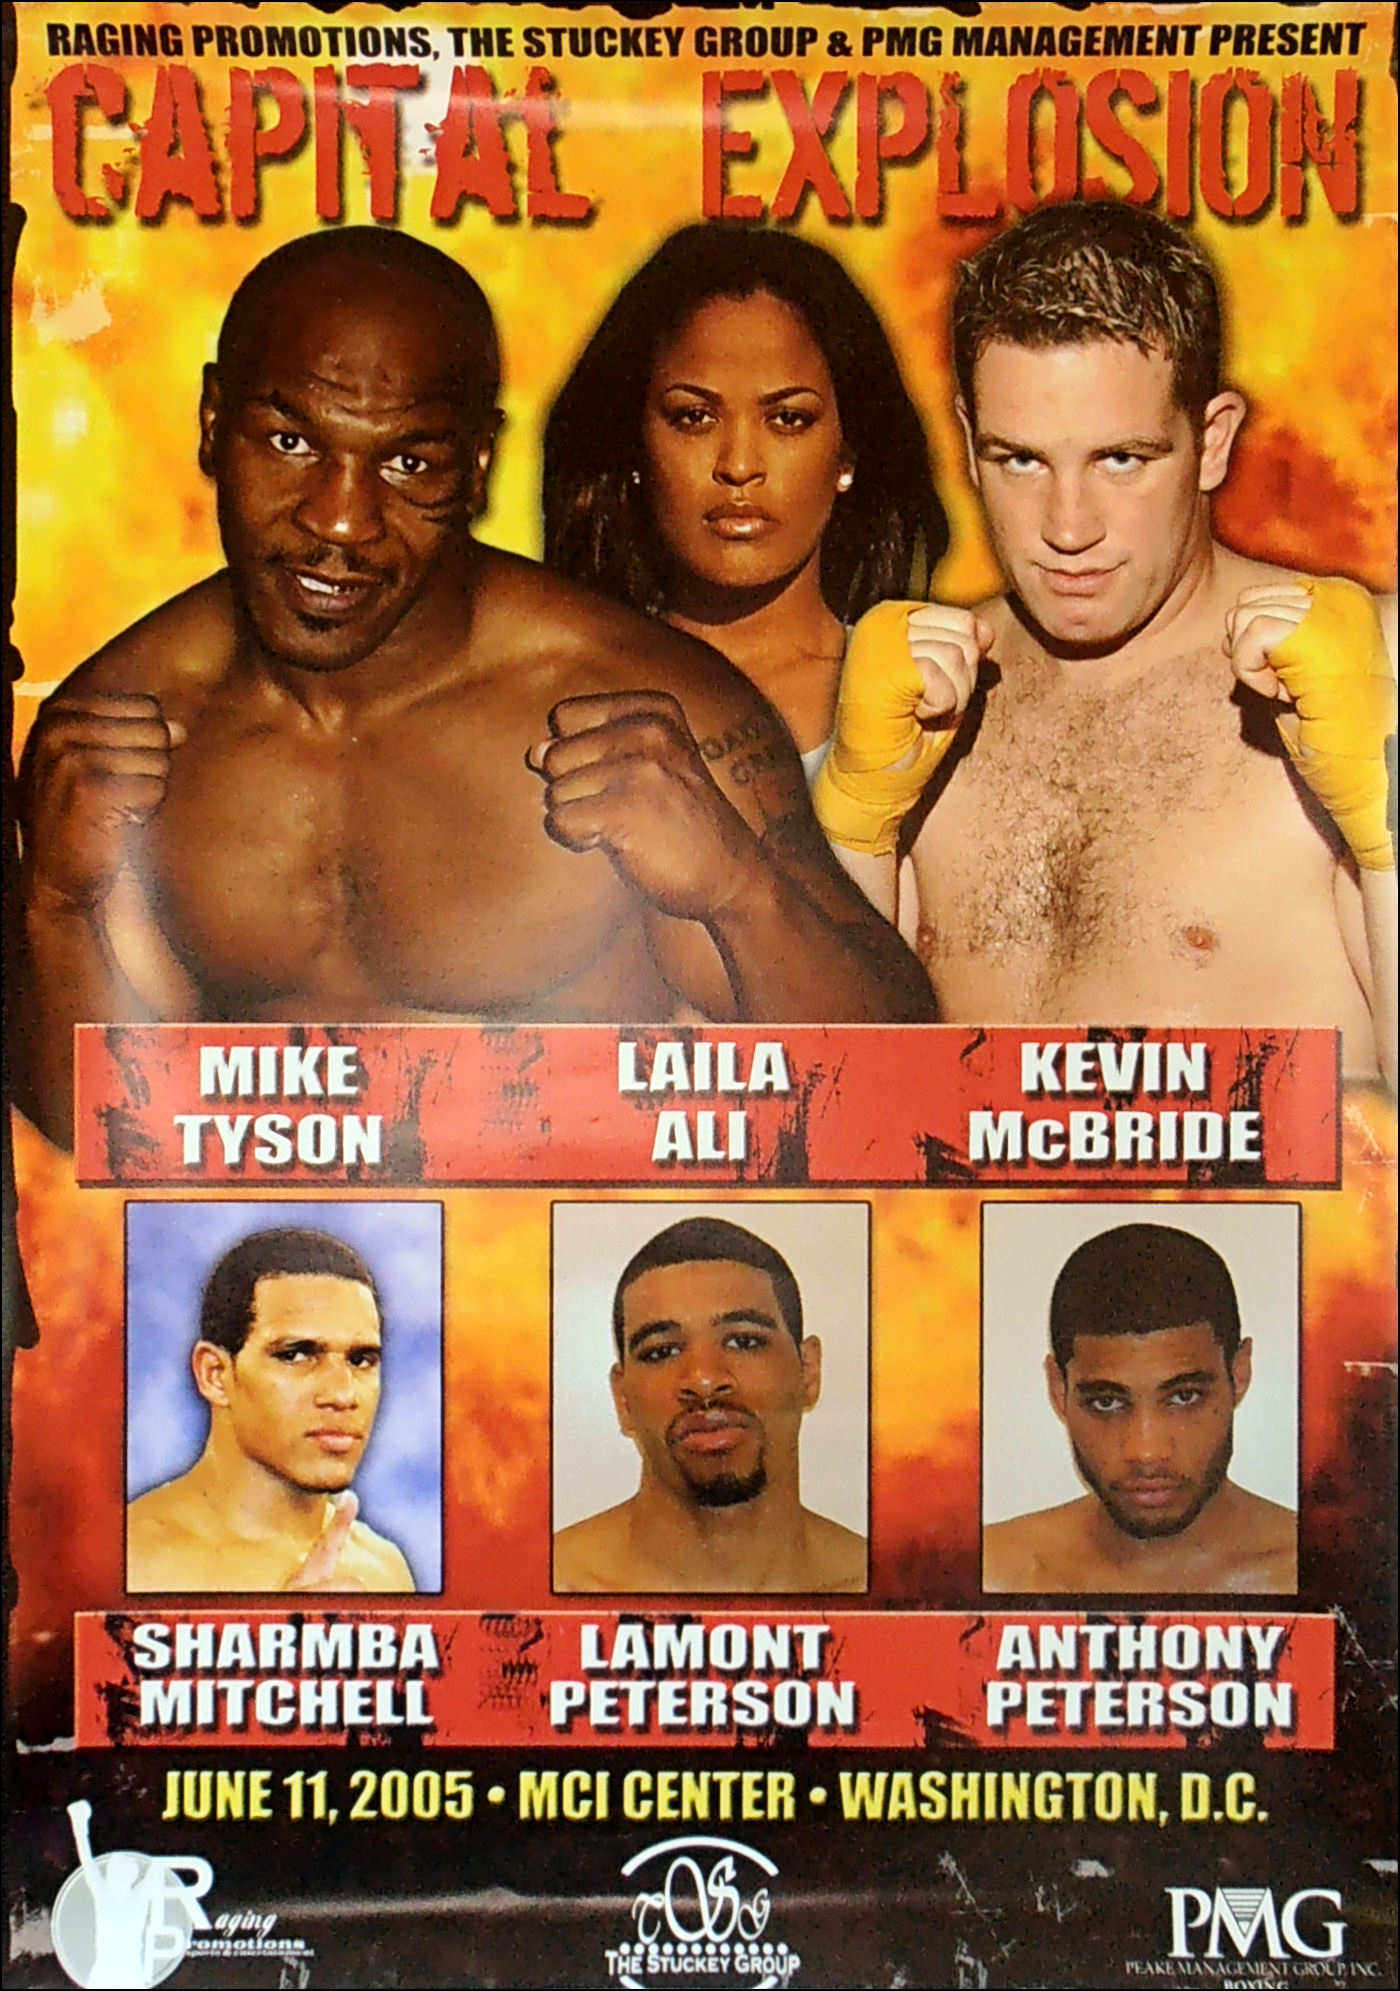 Mike tyson vs kevin mcbride